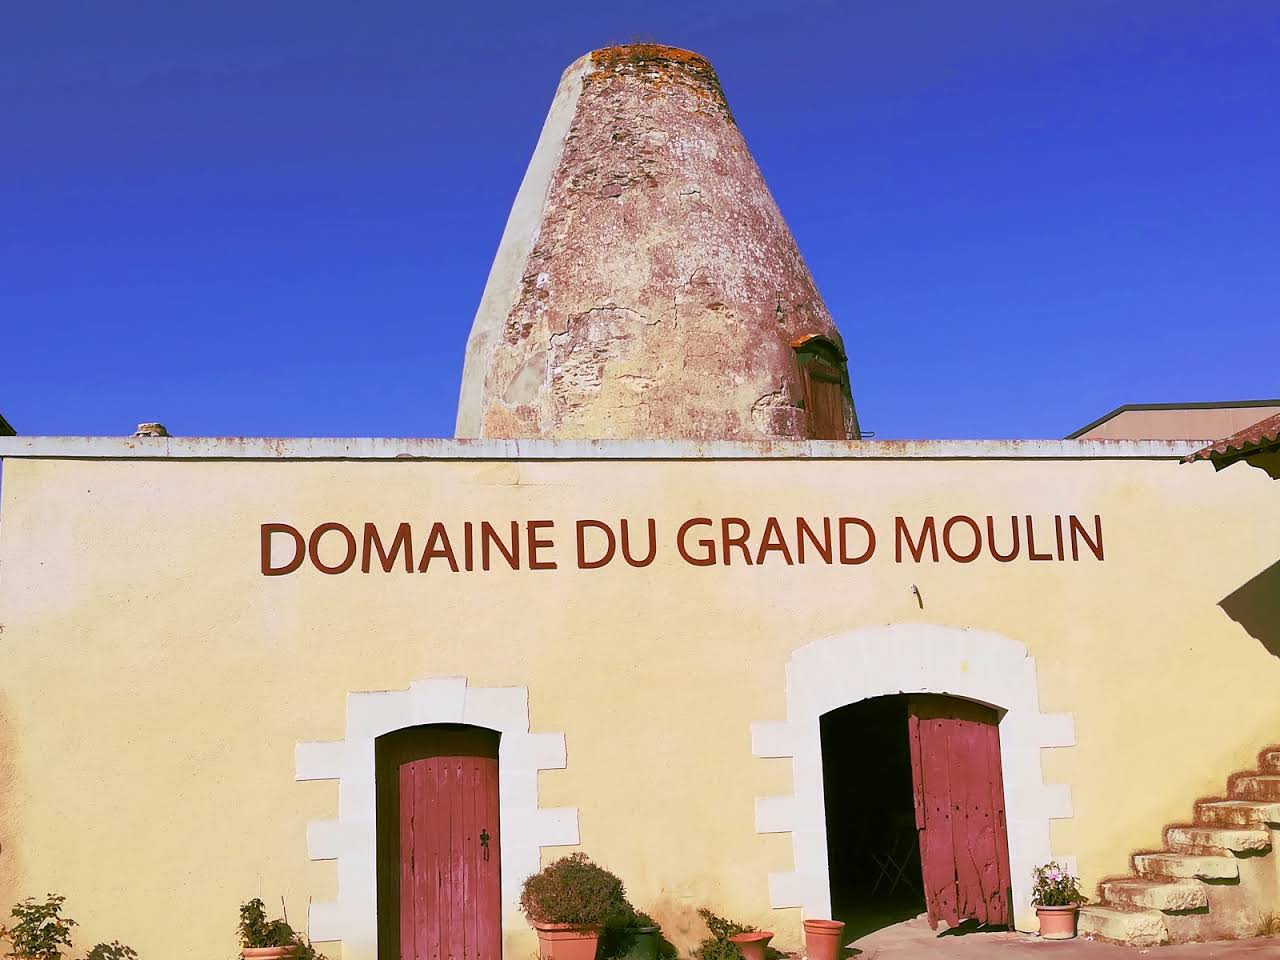 Domaine du Grand Moulin